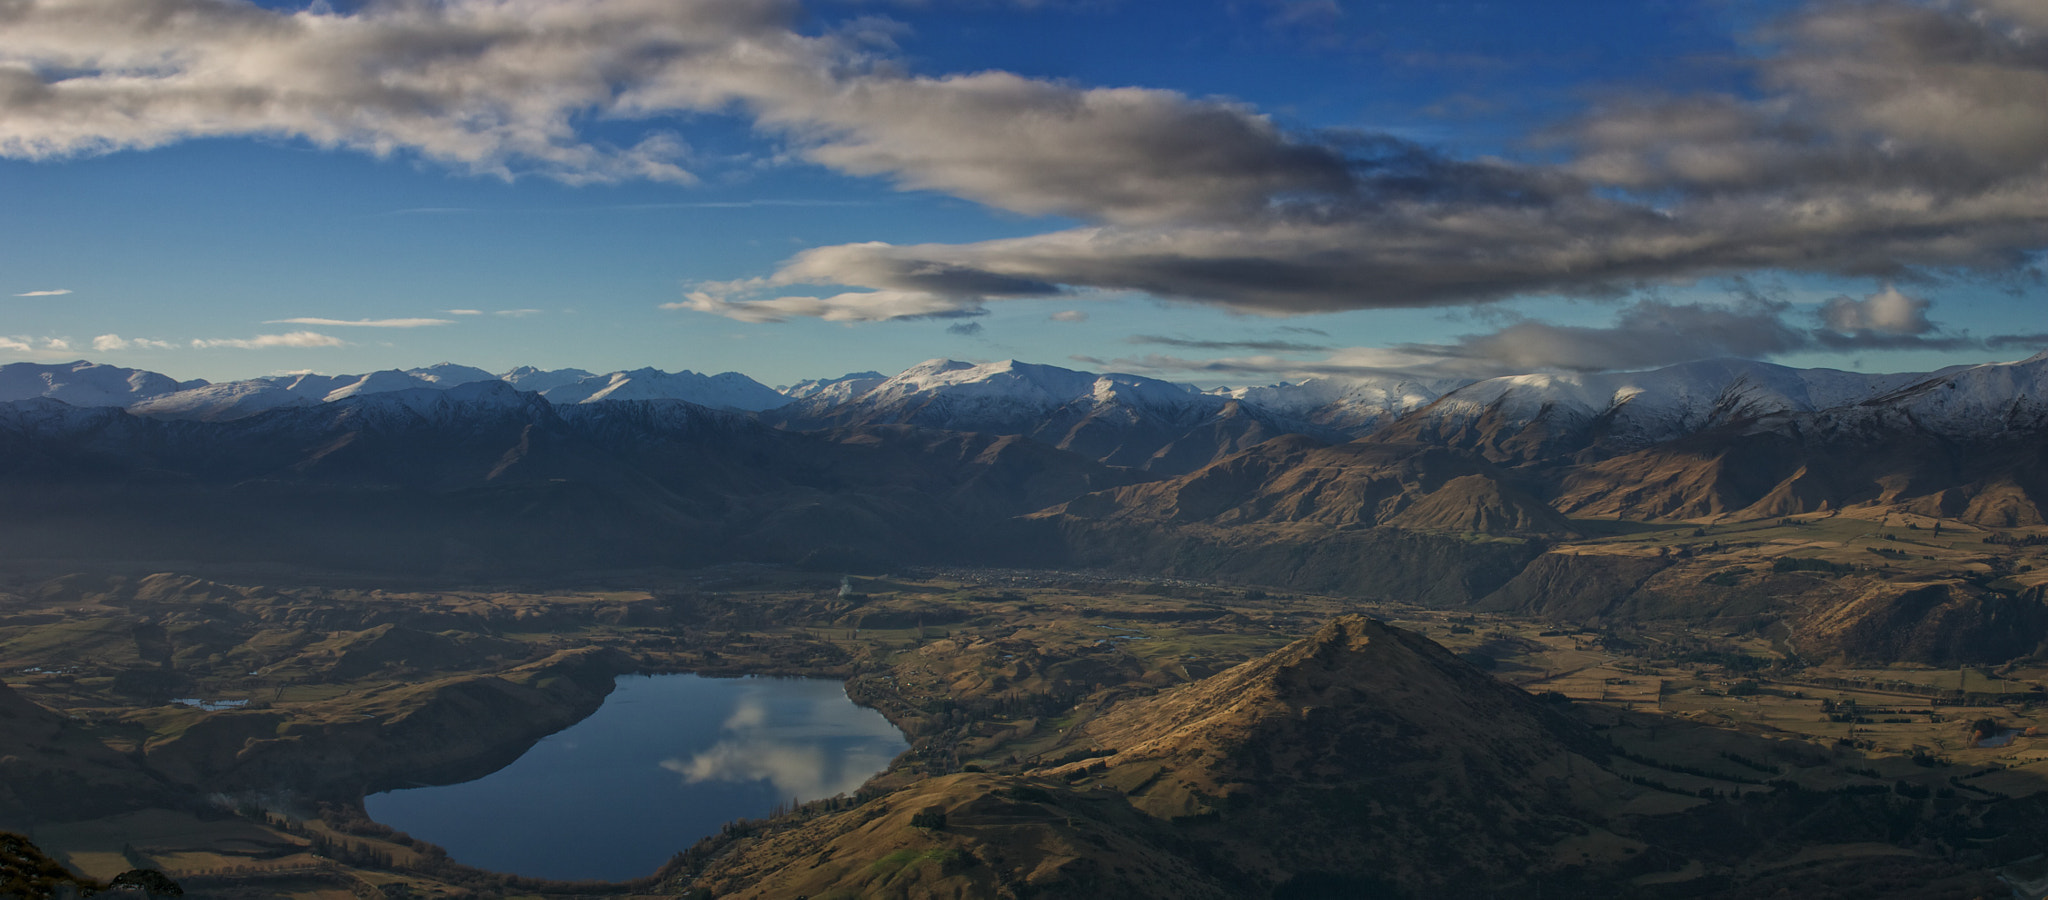 Photograph Queenstown Panorama #2 by James Cook on 500px